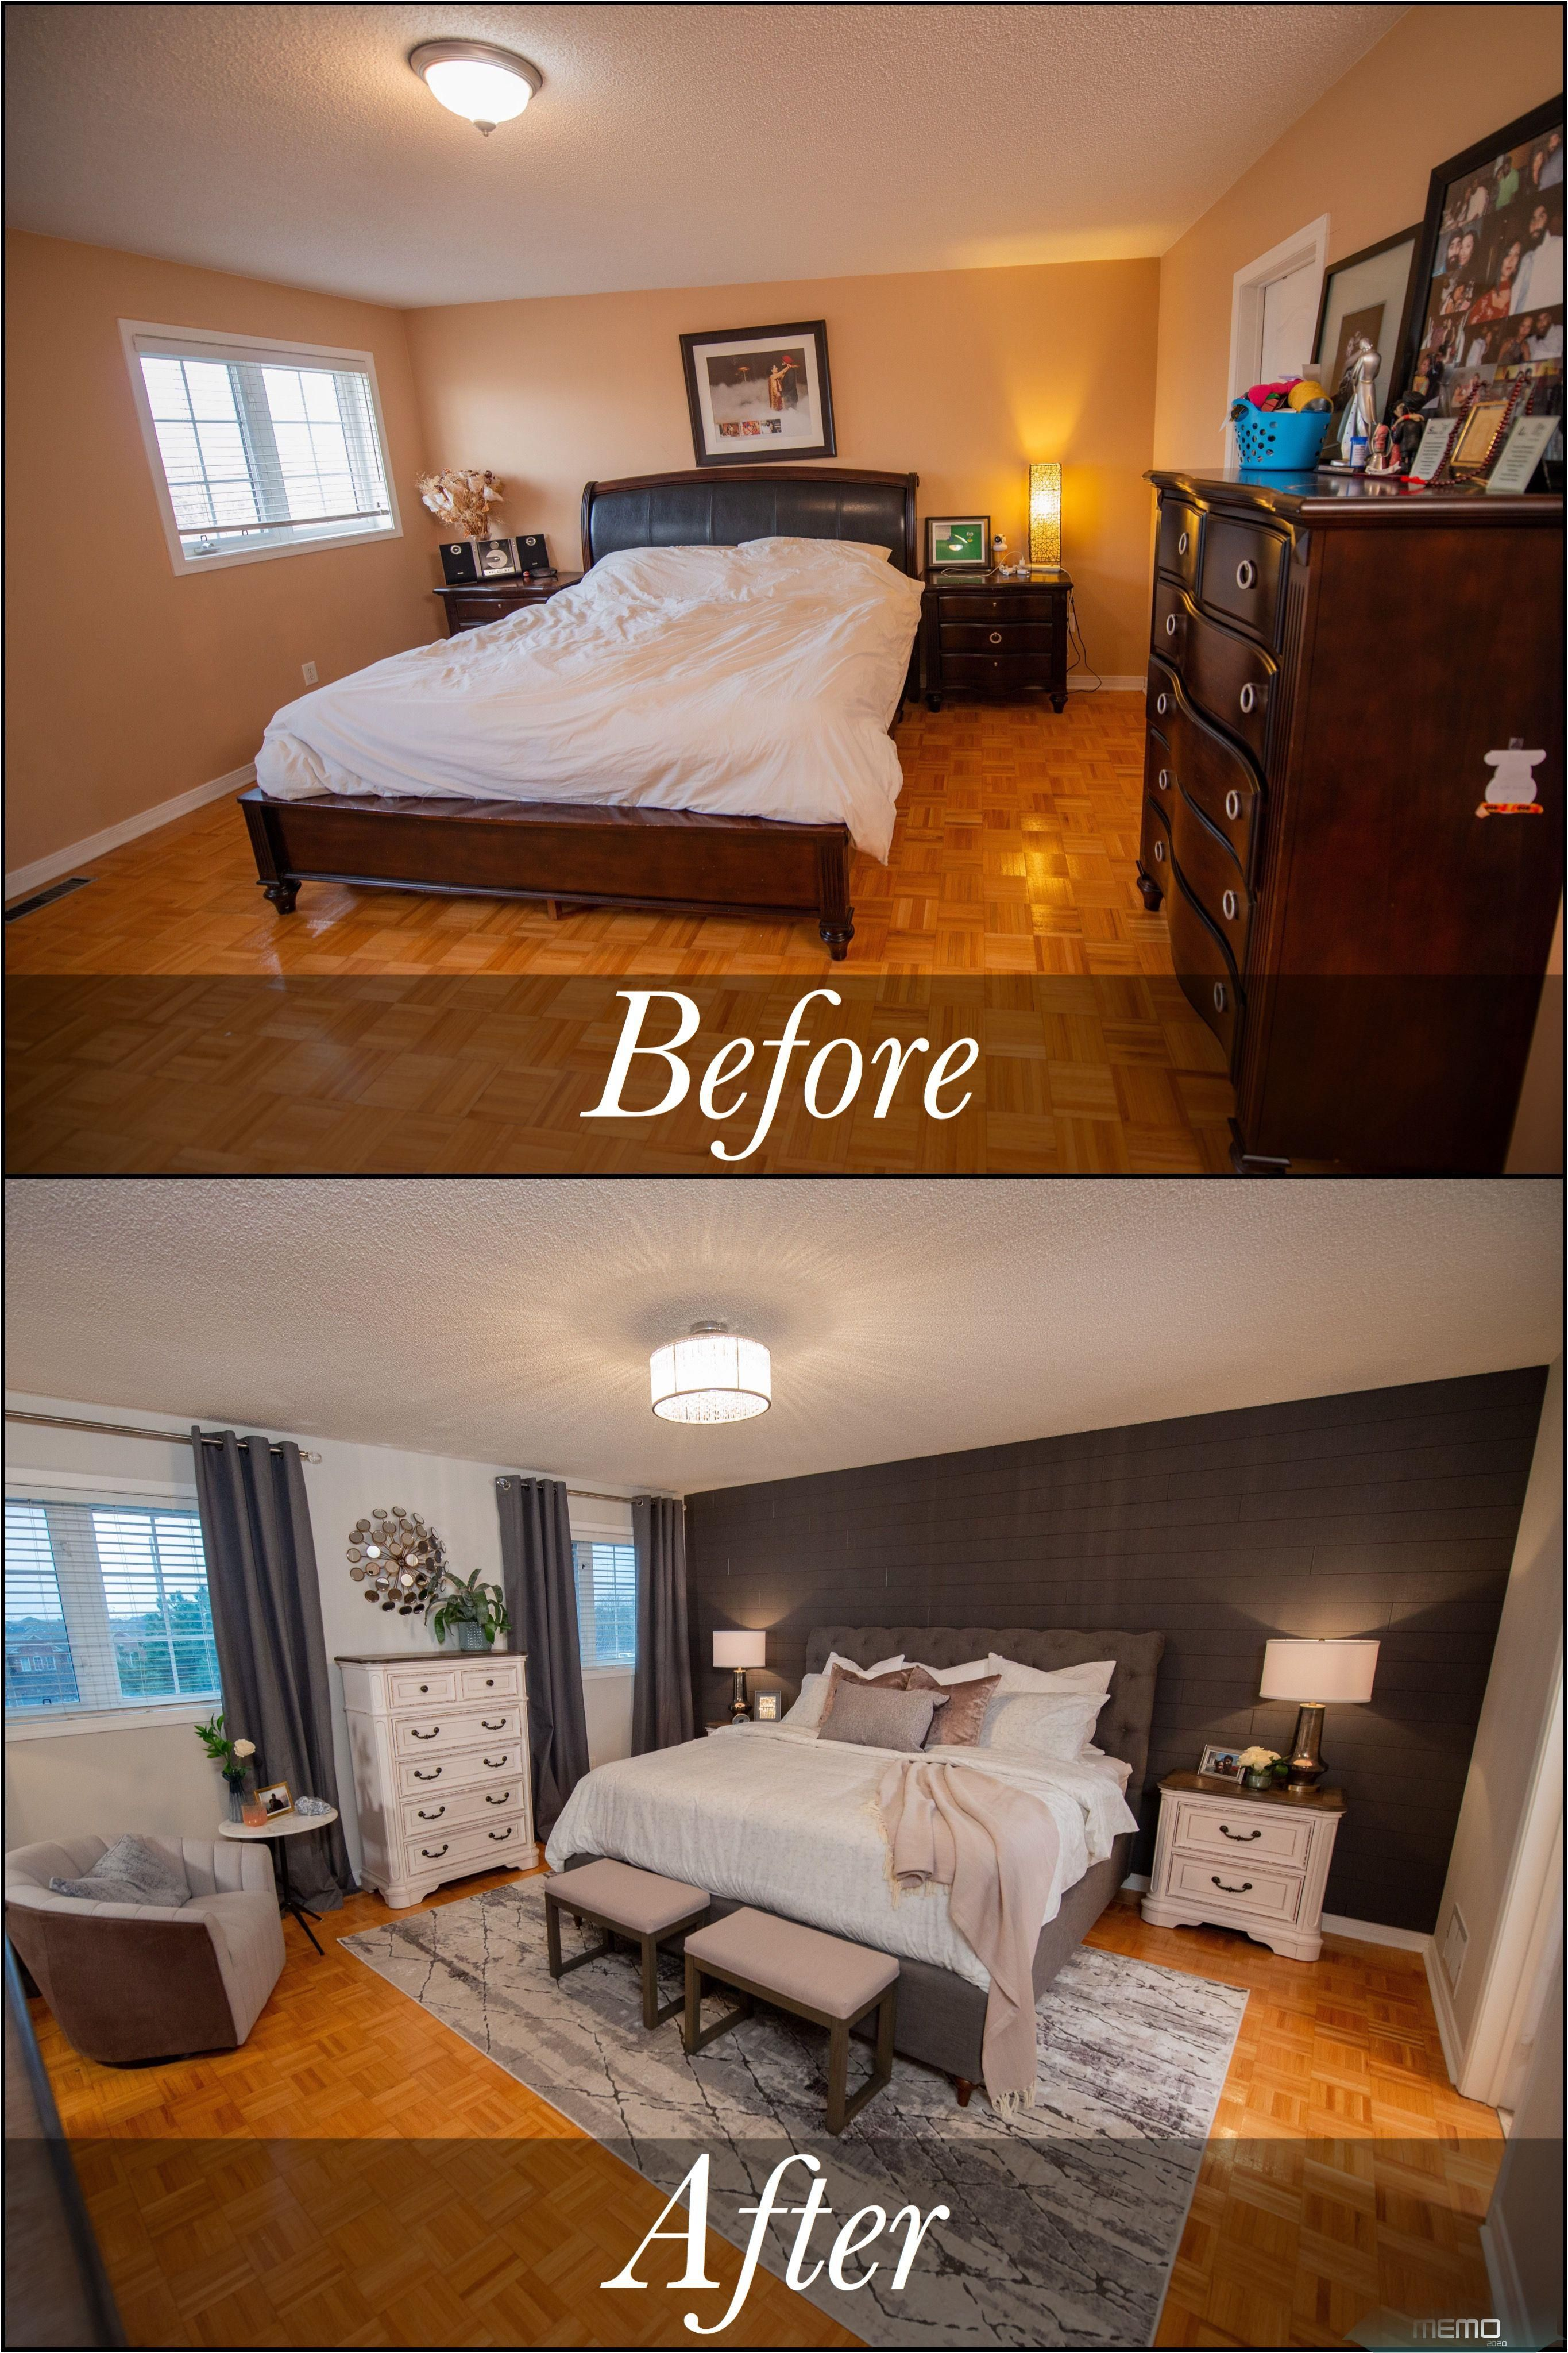 Jun 28 2019 Learn How To Renovate A Master Bedroom That Is In Need Of Some Serious Tlc In Just One Day In 2020 Hauptschlafzimmer Schlafzimmerumbau Luxusschlafzimmer